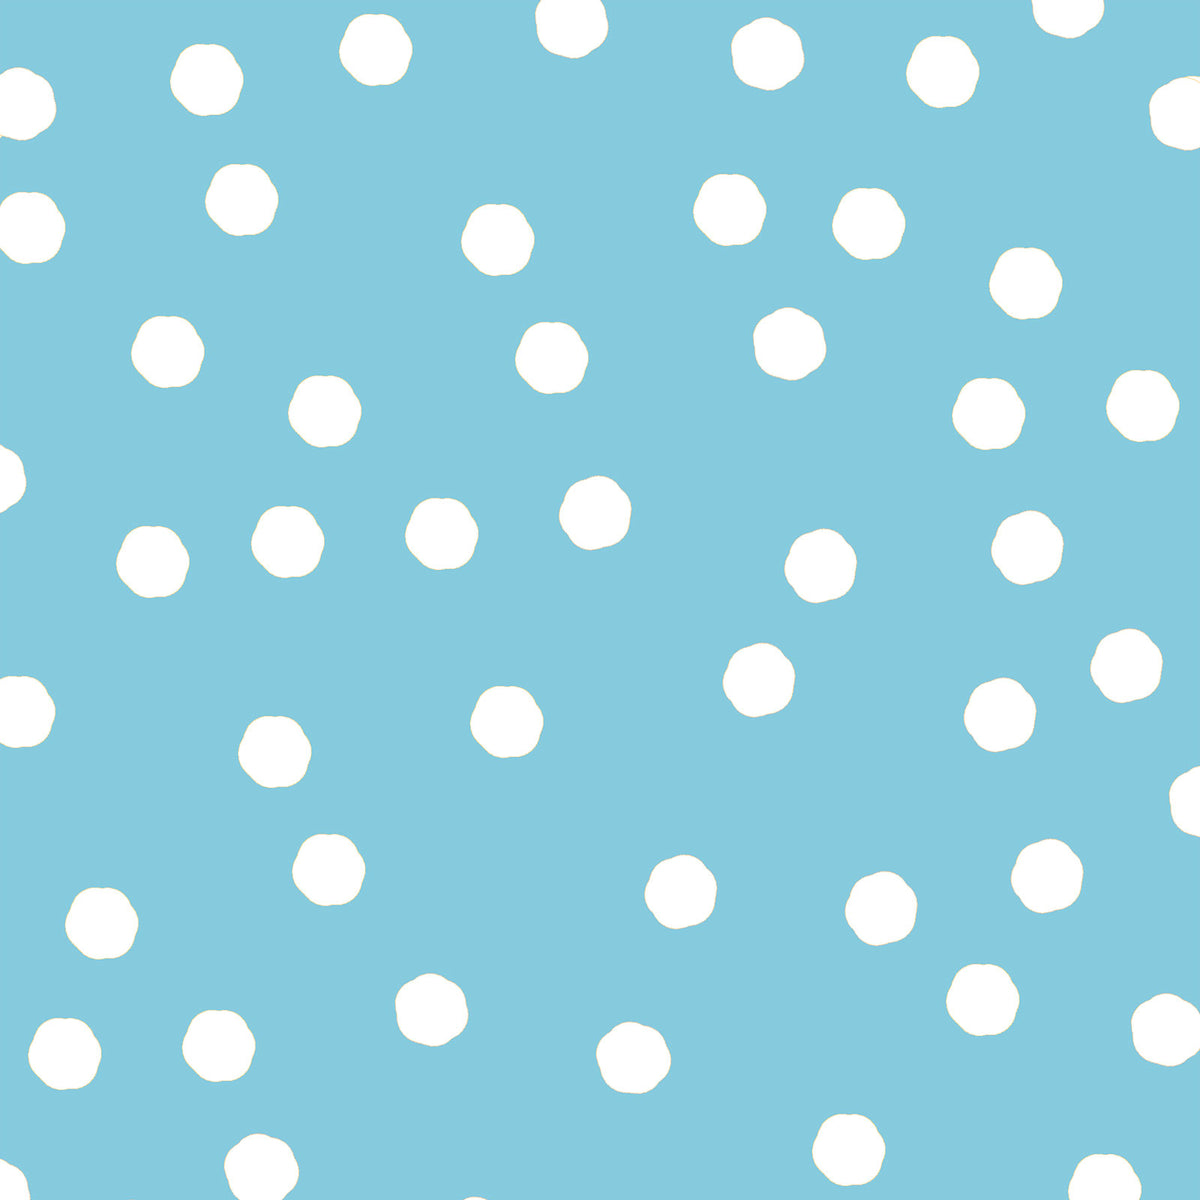 Jumbo Dots Turquoise / White Fabric Yard